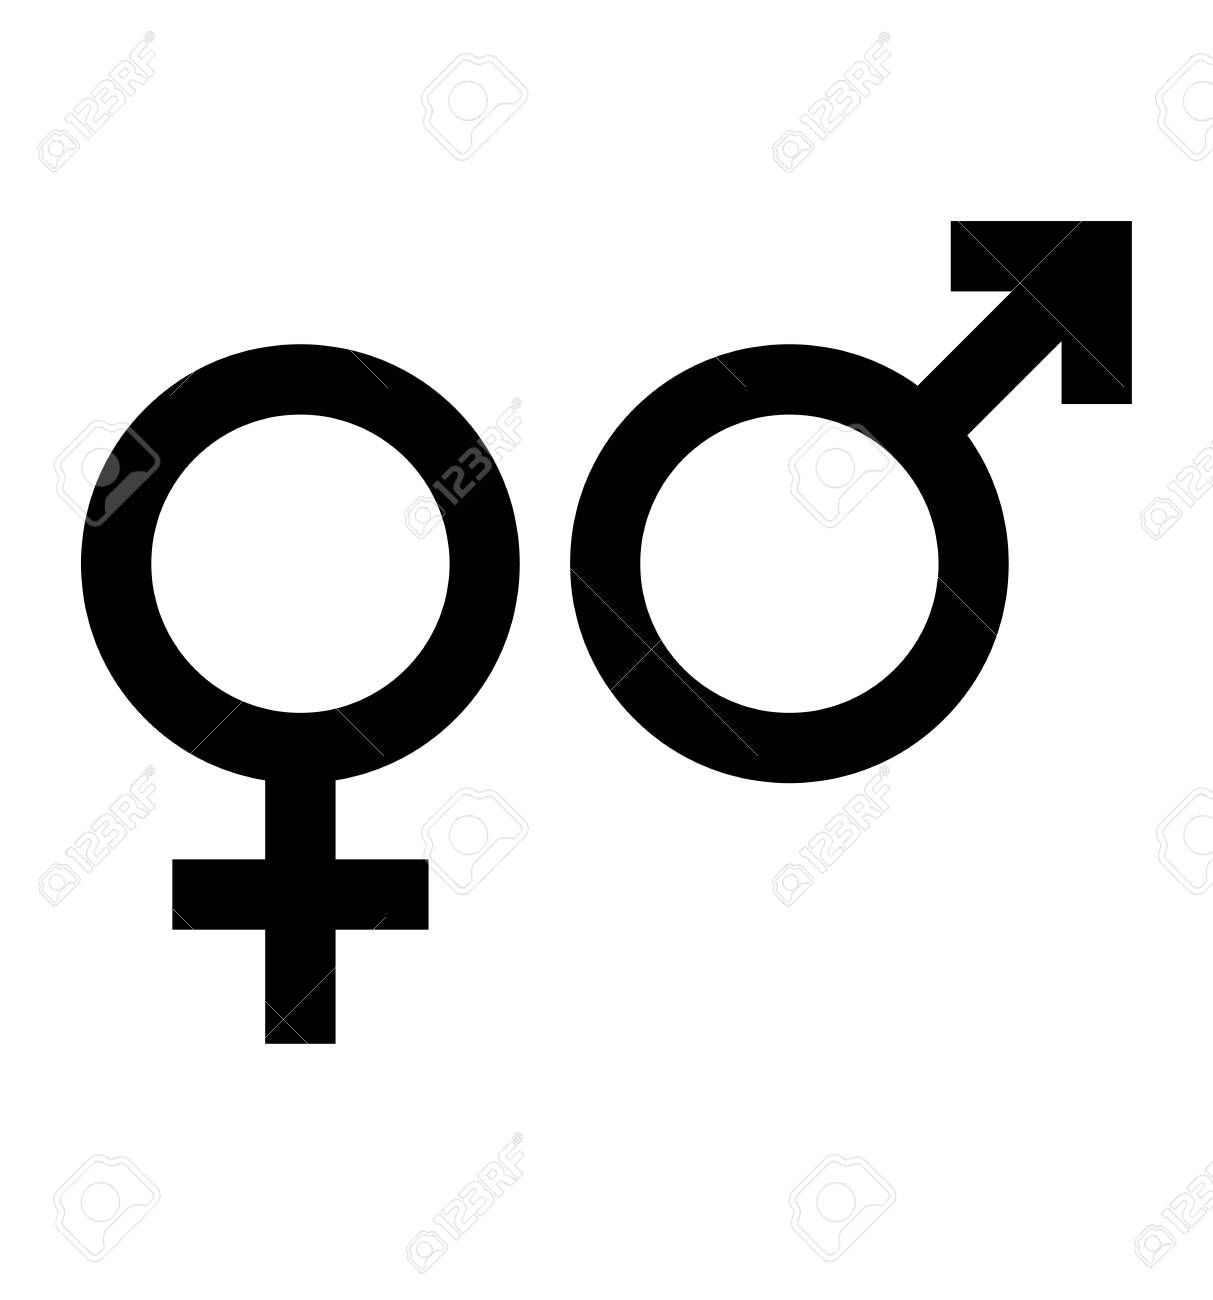 Gender icon symbol vector isolated on white - 136638303